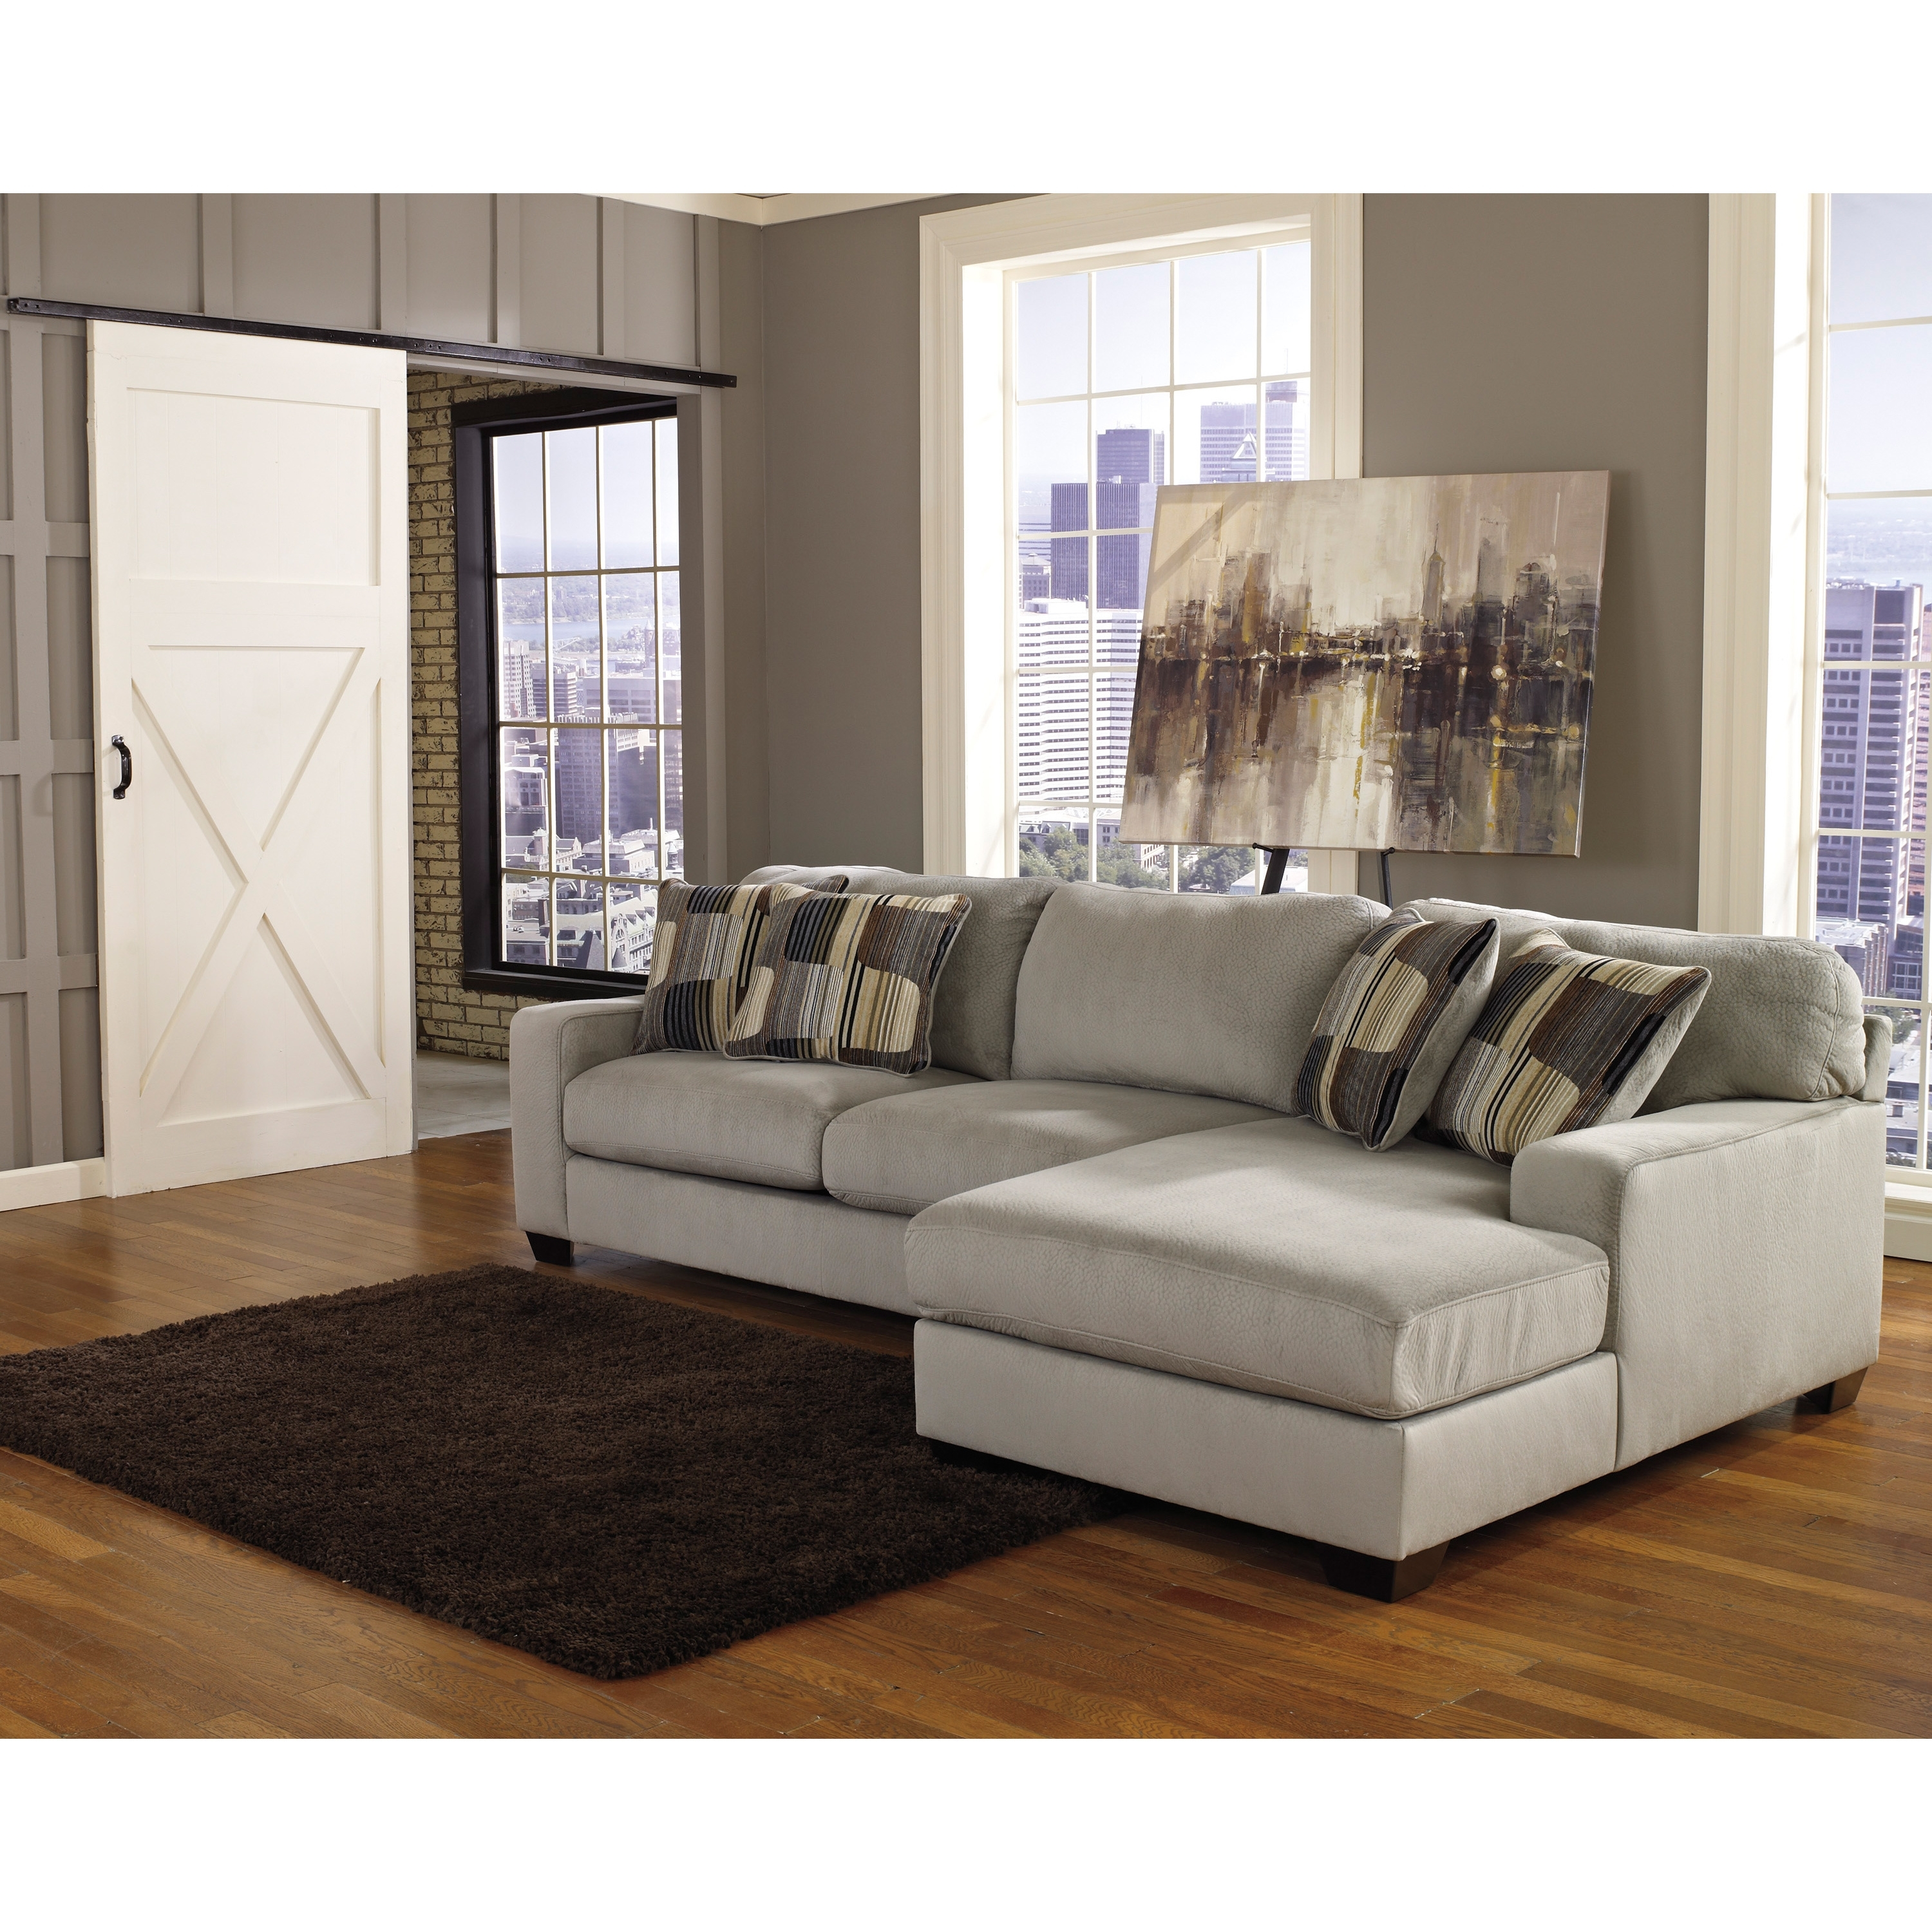 Well Known Western Style Sectional Sofas Inside Western Style Sectional Sofas – Fjellkjeden (View 9 of 15)